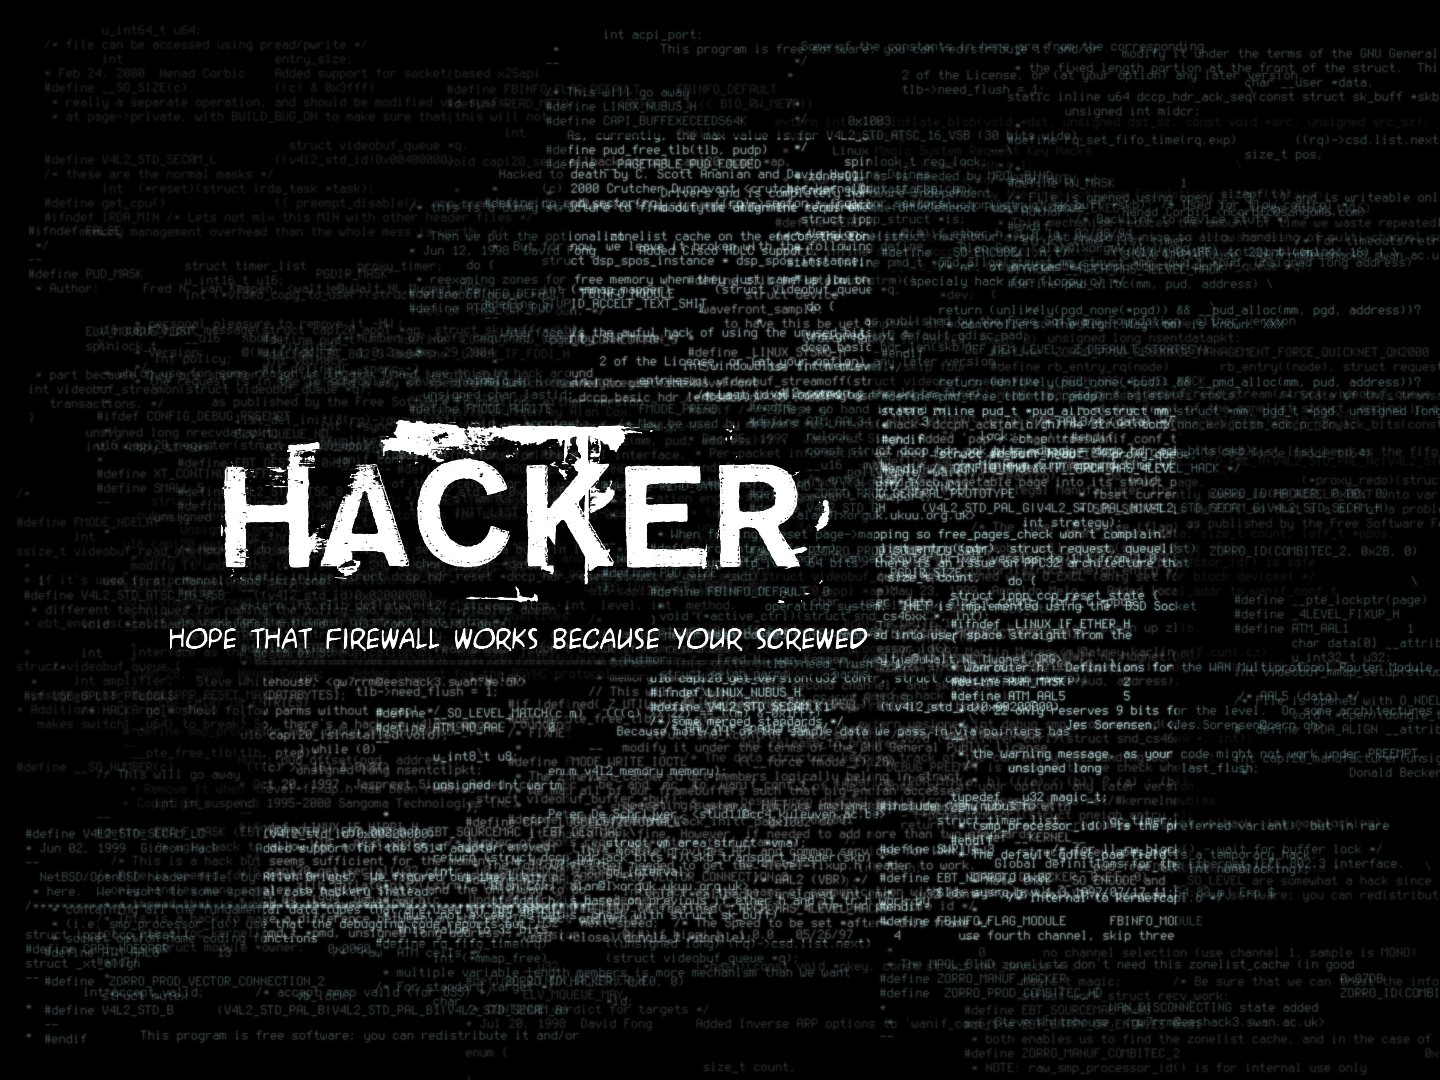 Download Size Sign Hack Wallpaper 1440x1080 Full HD Wallpapers 1440x1080